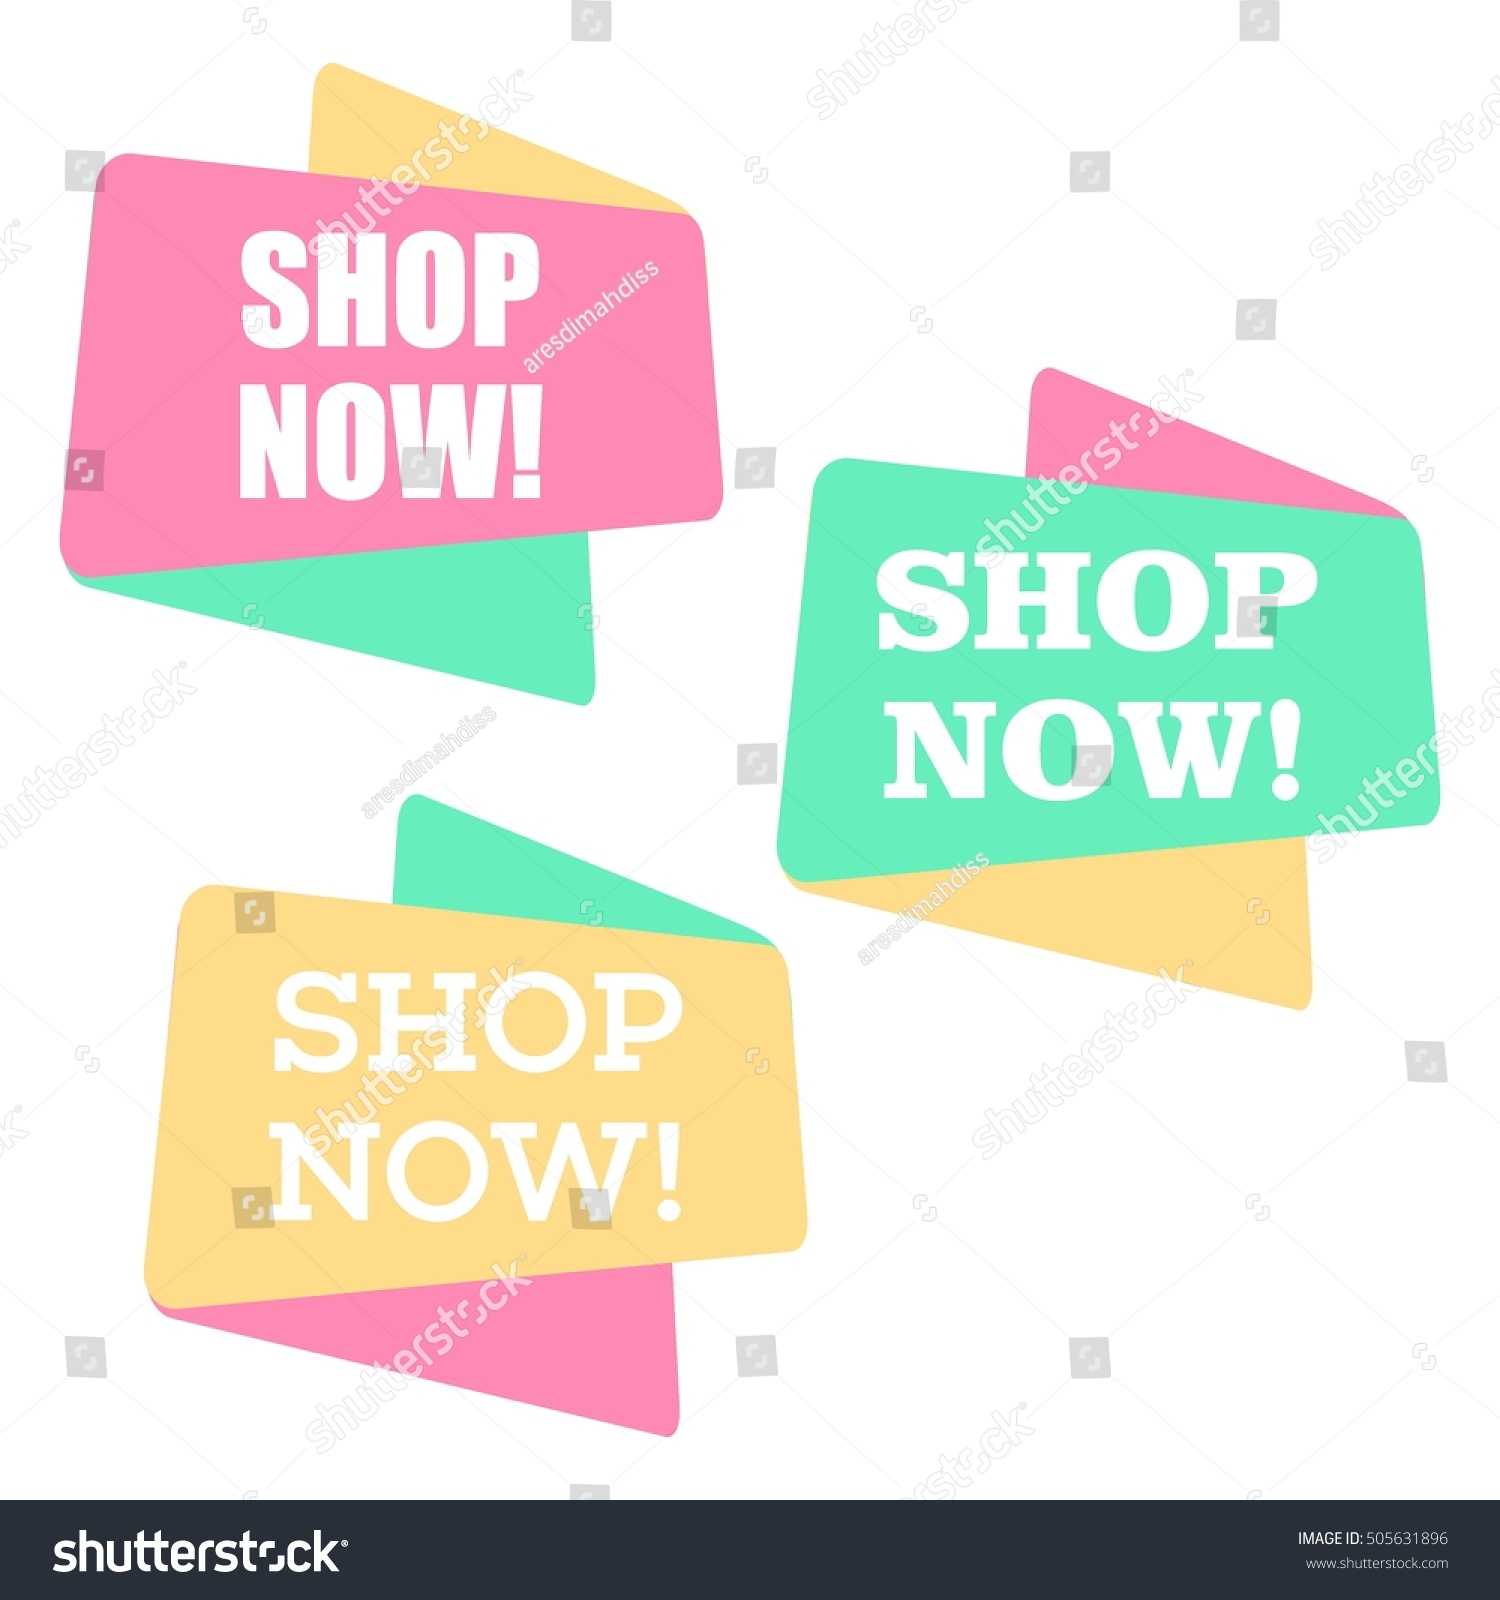 Save BIG with Macy's coupons, deals & promos! Macy's provides exclusive offers from top brands on clothing, beauty, home decor and shoes. Save online & in-store. Shop NOW!